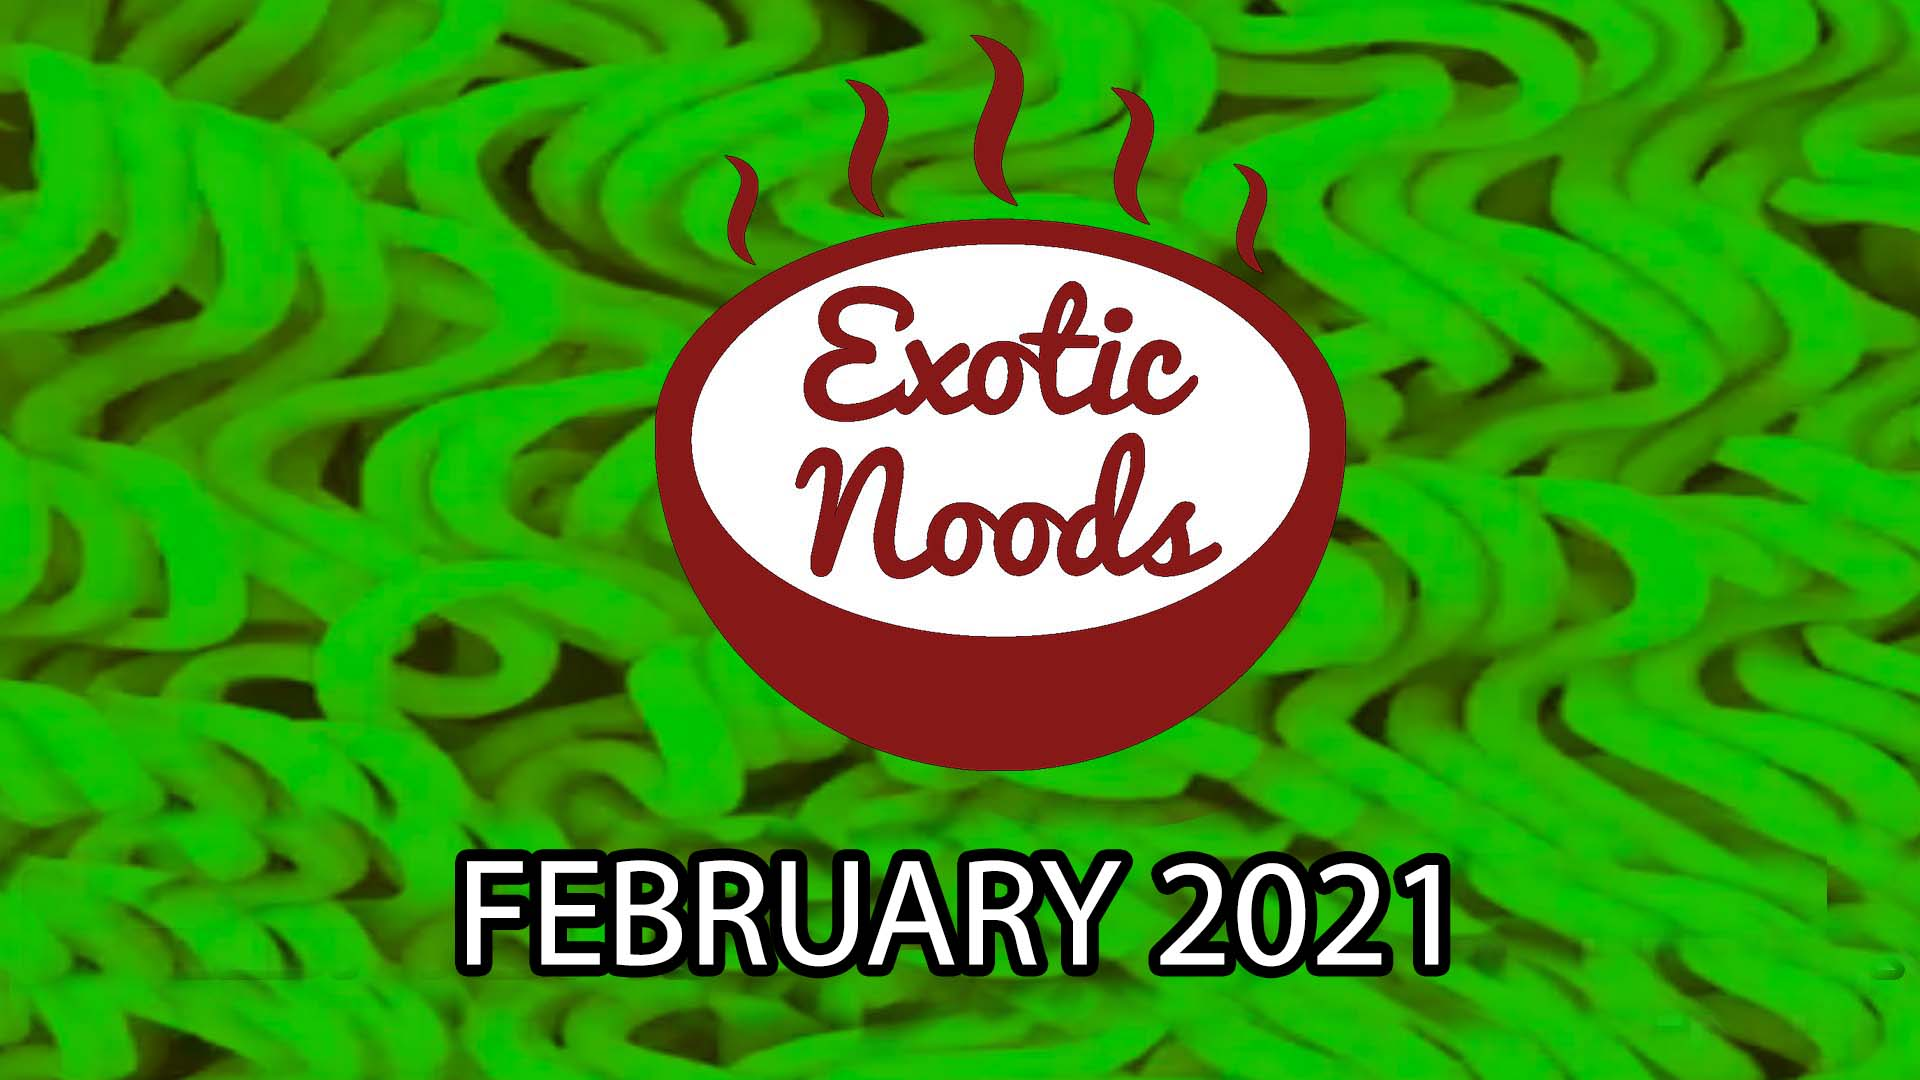 Exotic Noods Subscription Box - Febryary 2021